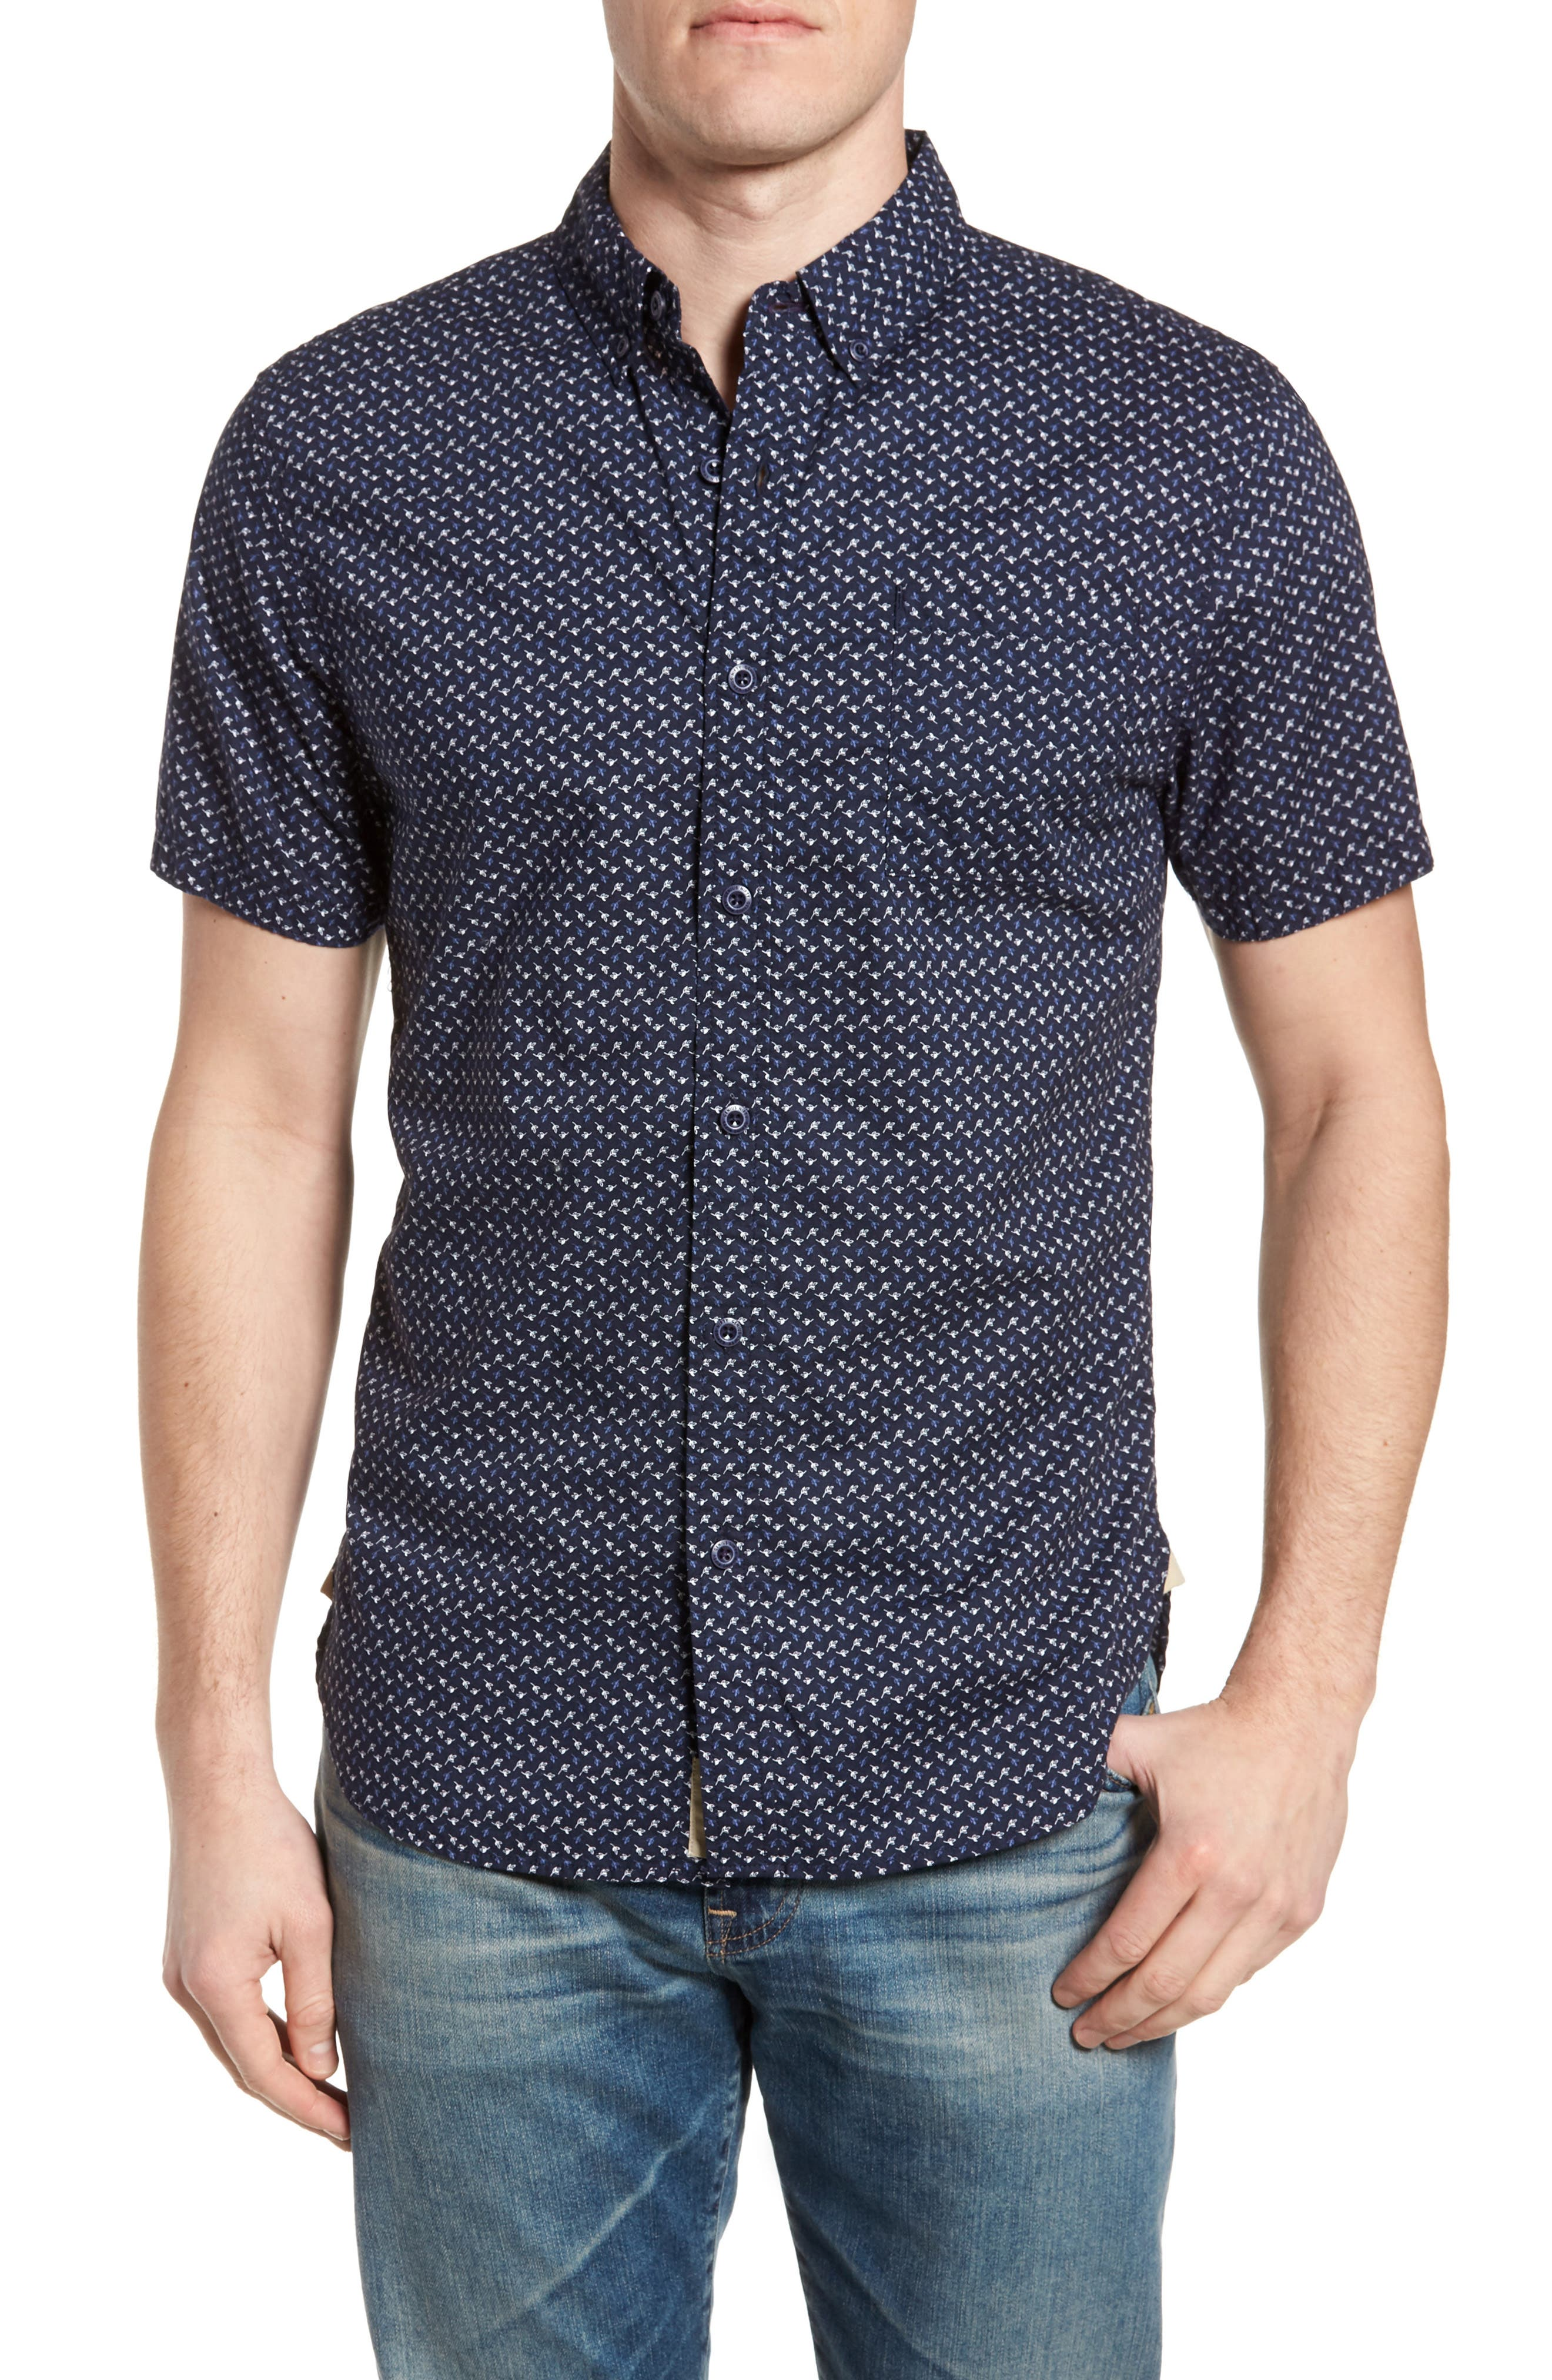 Truman Slim Fit Short Sleeve Sport Shirt,                             Main thumbnail 1, color,                             Navy